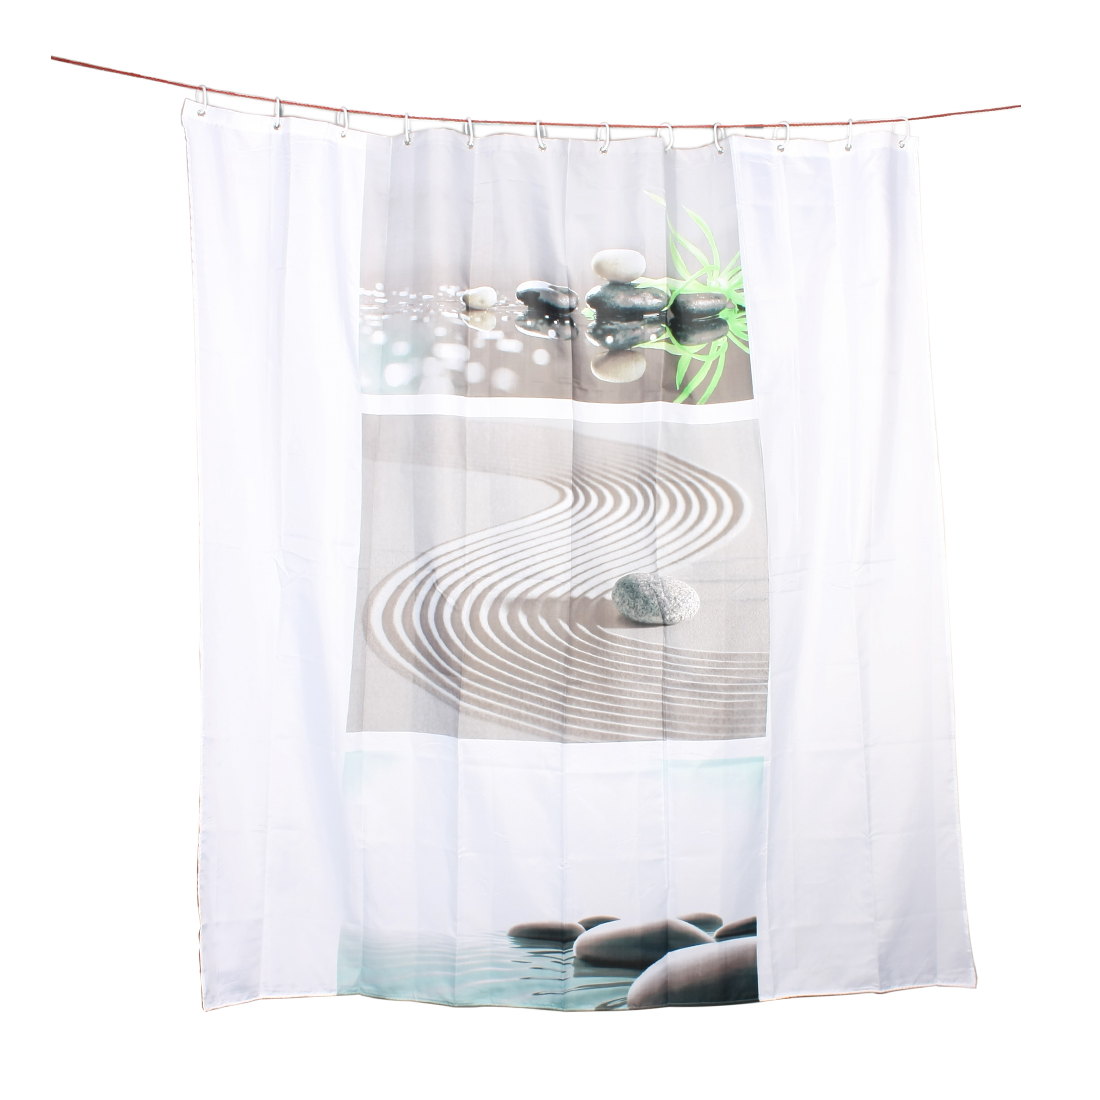 Sand Water Stones Pattern Bathroom Accessory Shower Curtain w 12 Hooks 180x180cm